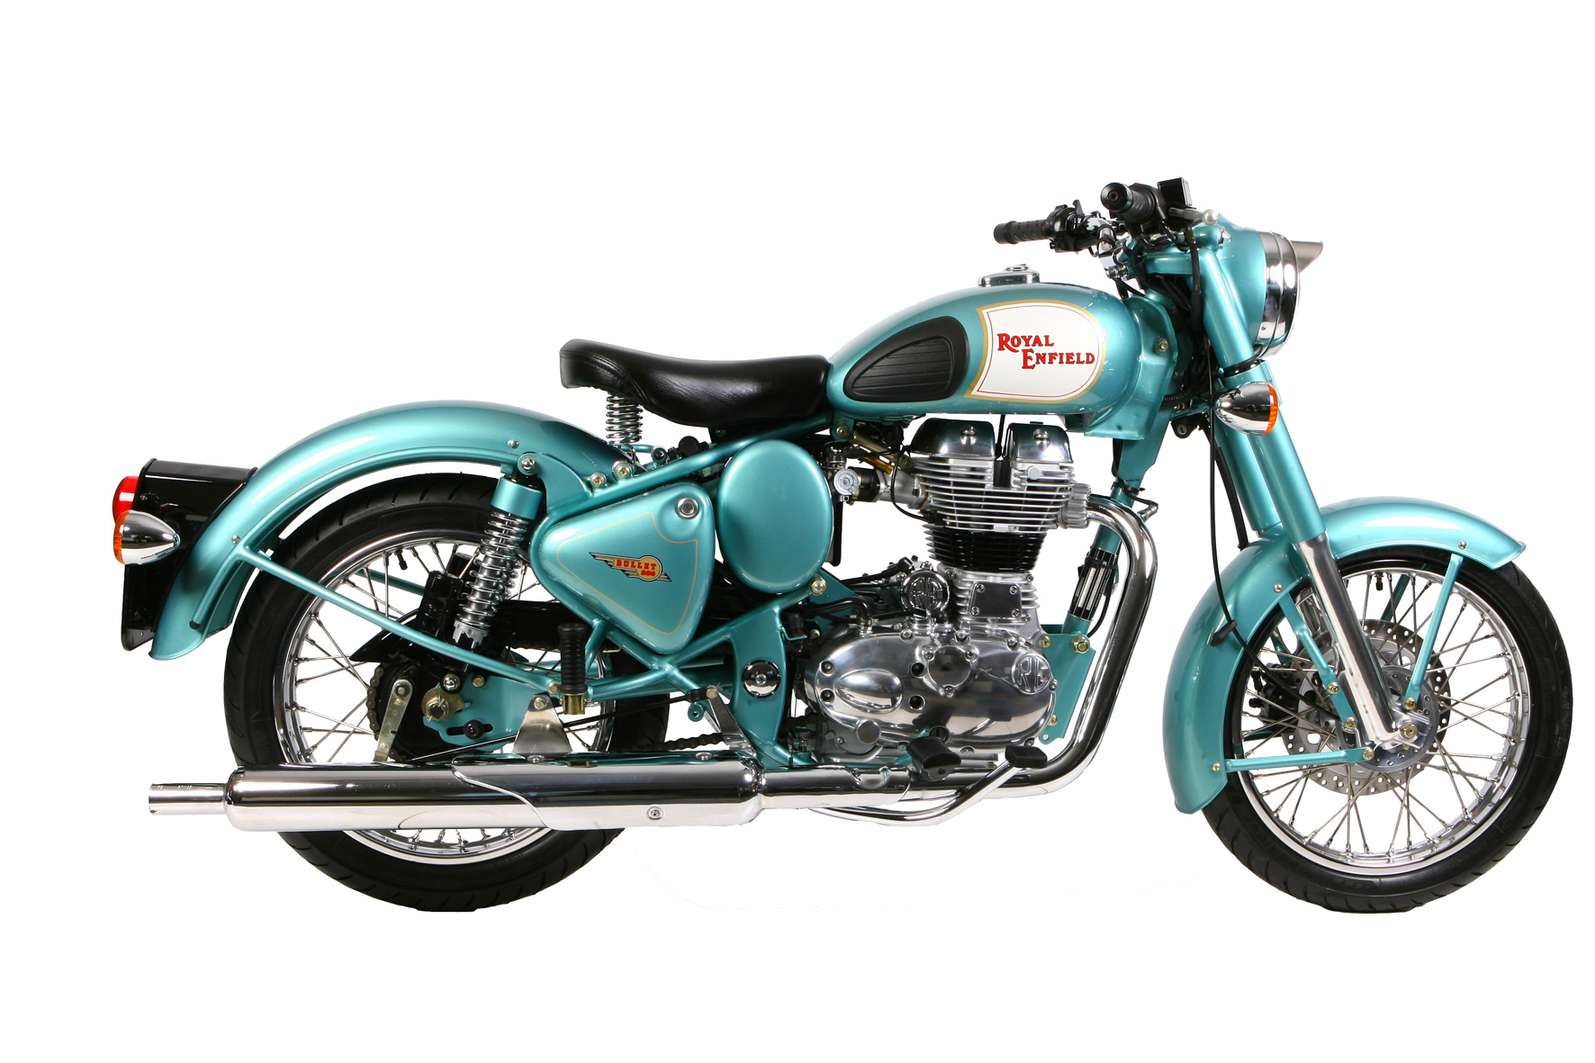 Royal Enfield Bullet 500 #8056190